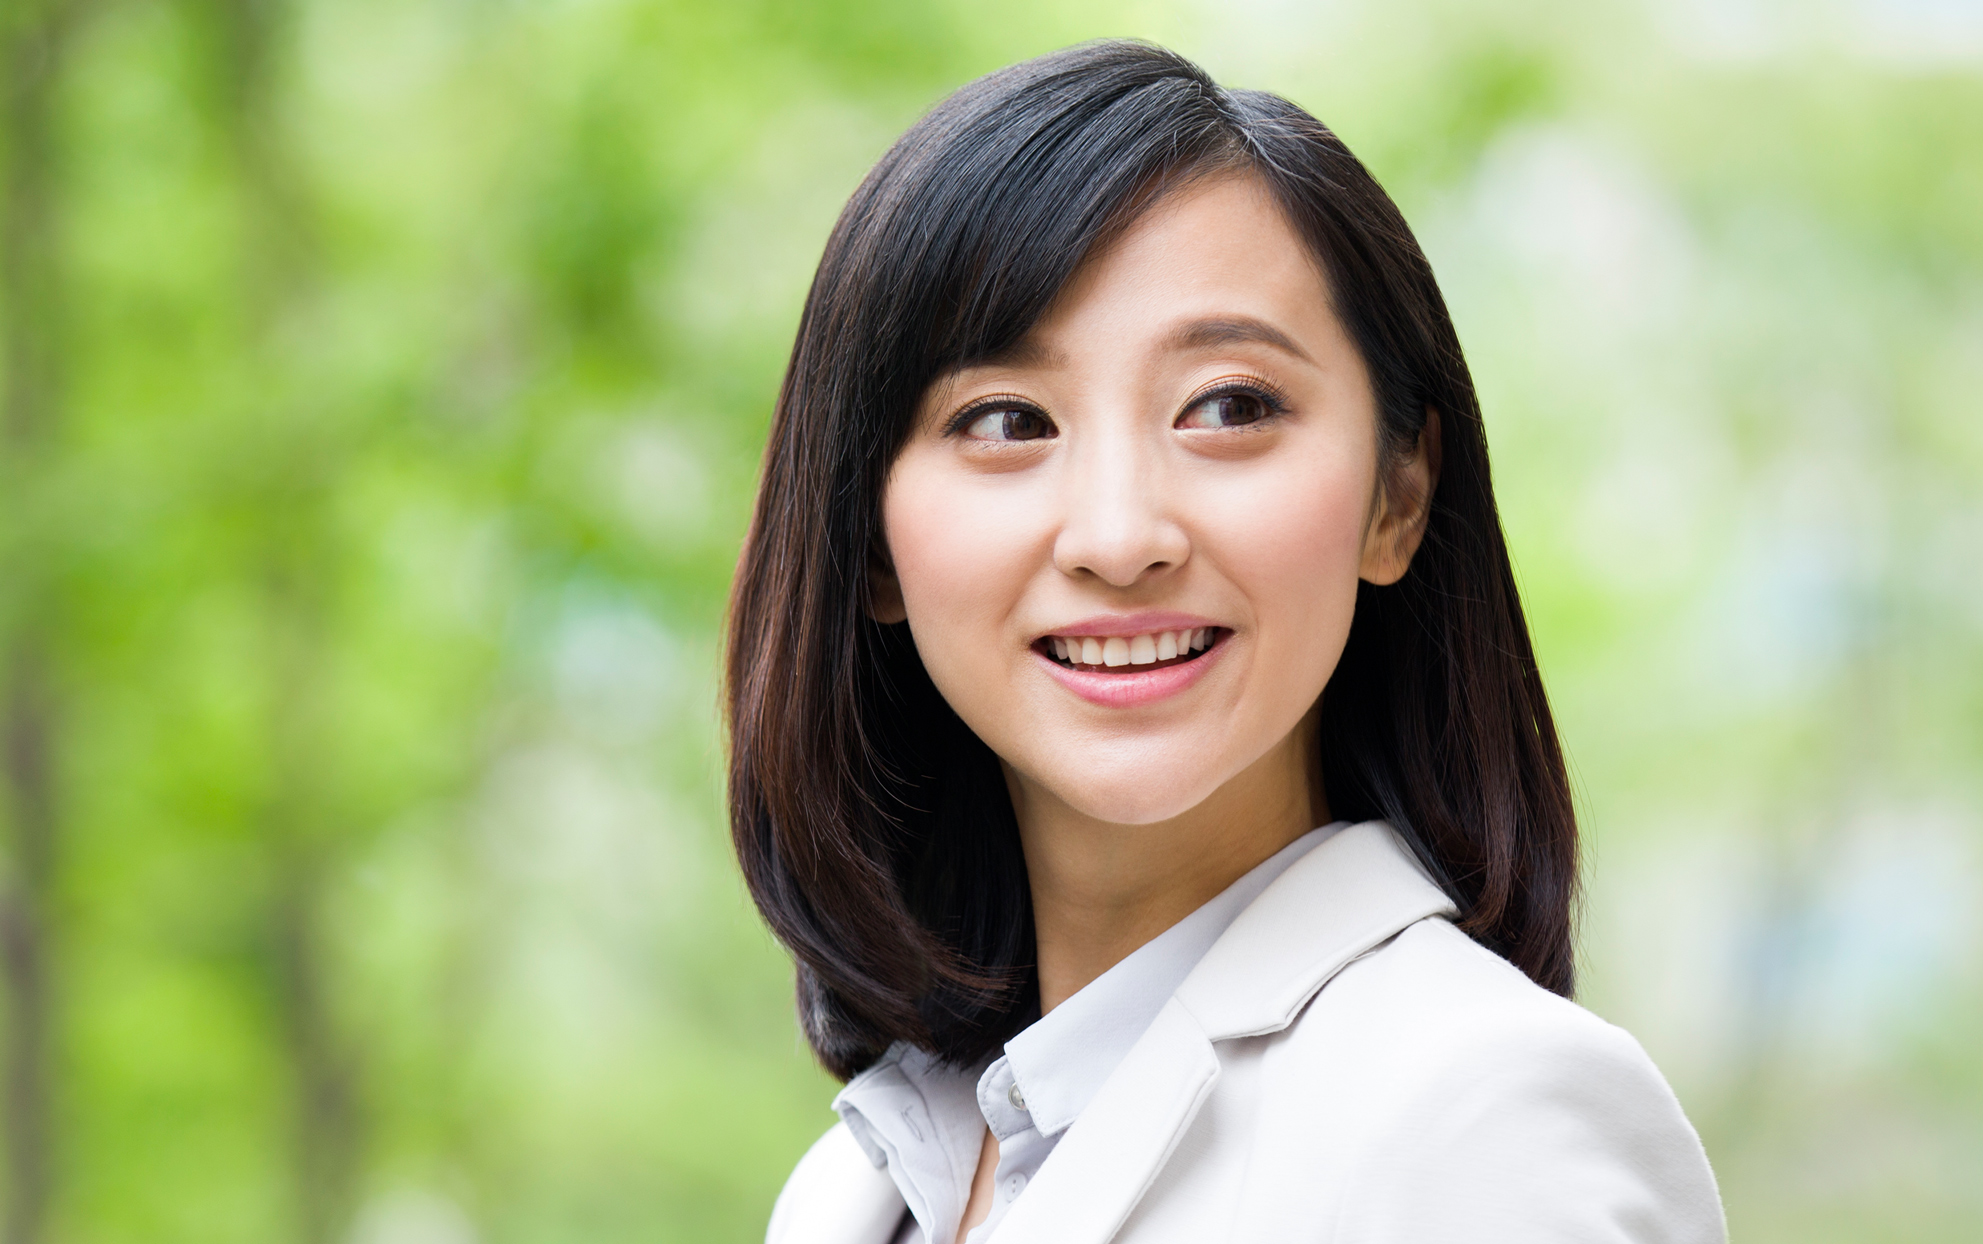 Asian woman with lob hairstyle smiling outside